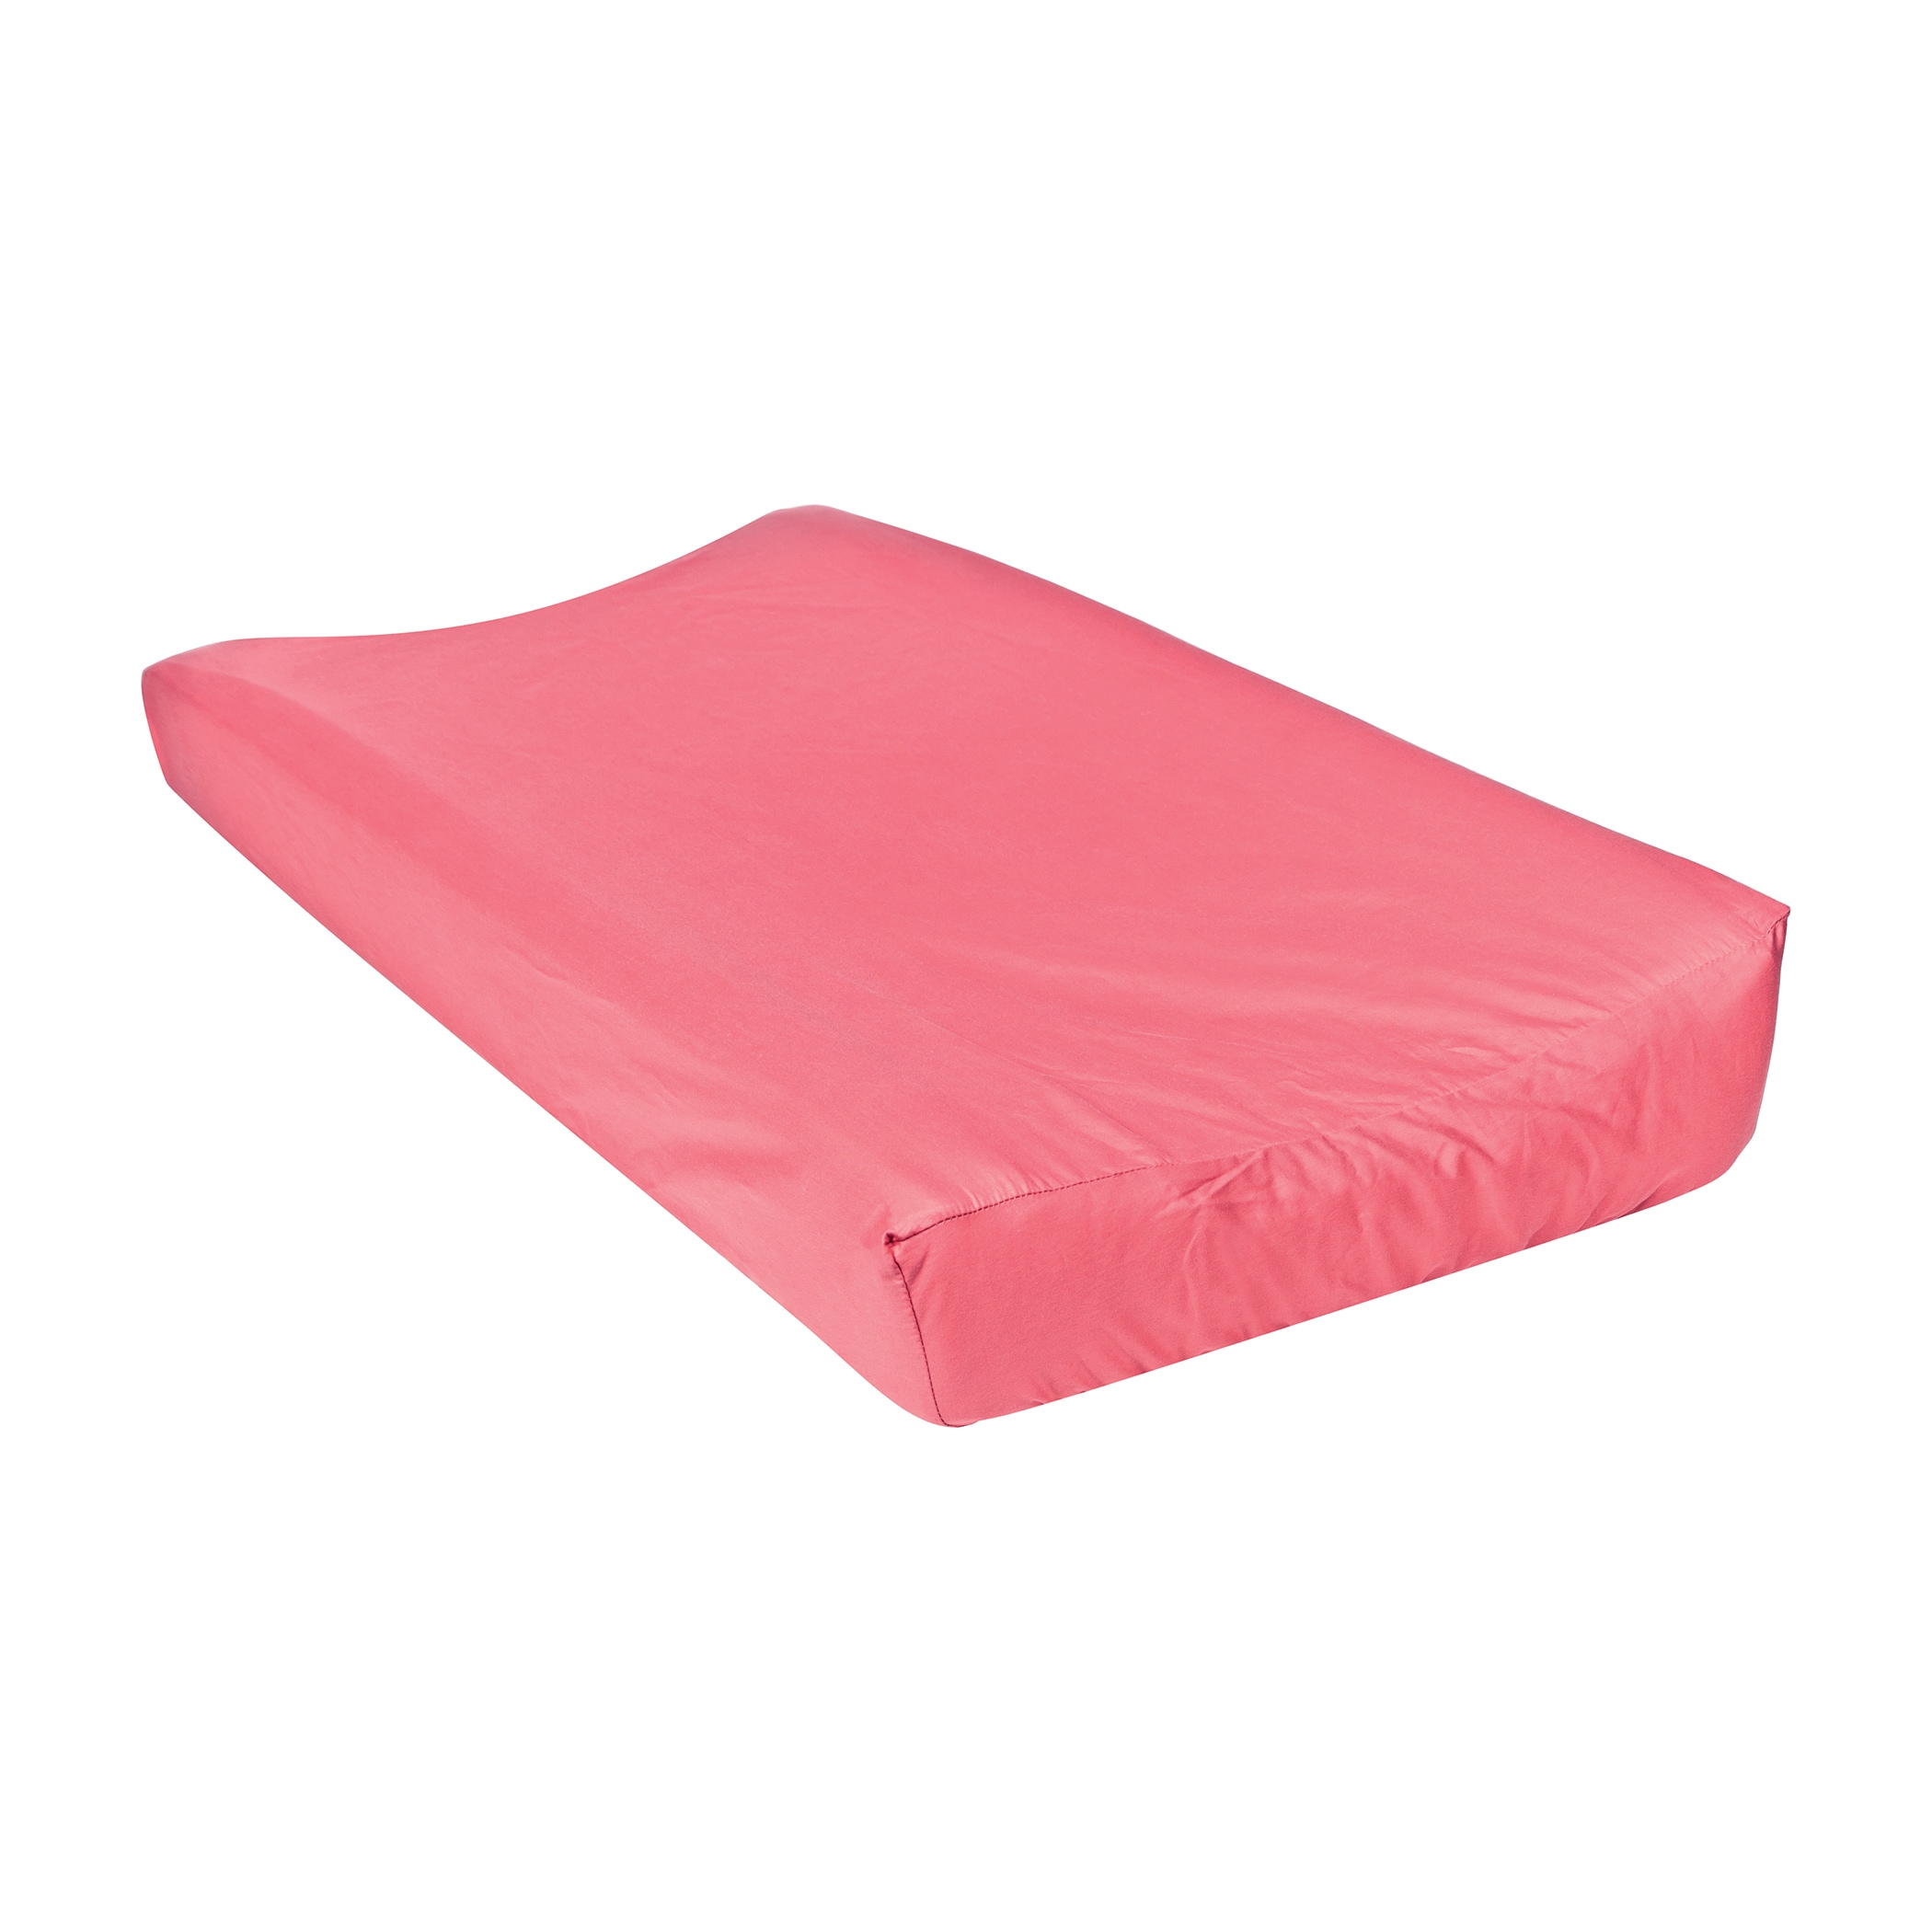 Trend Lab Waverly Pom Pom Play Coral Changing Pad Cover (...